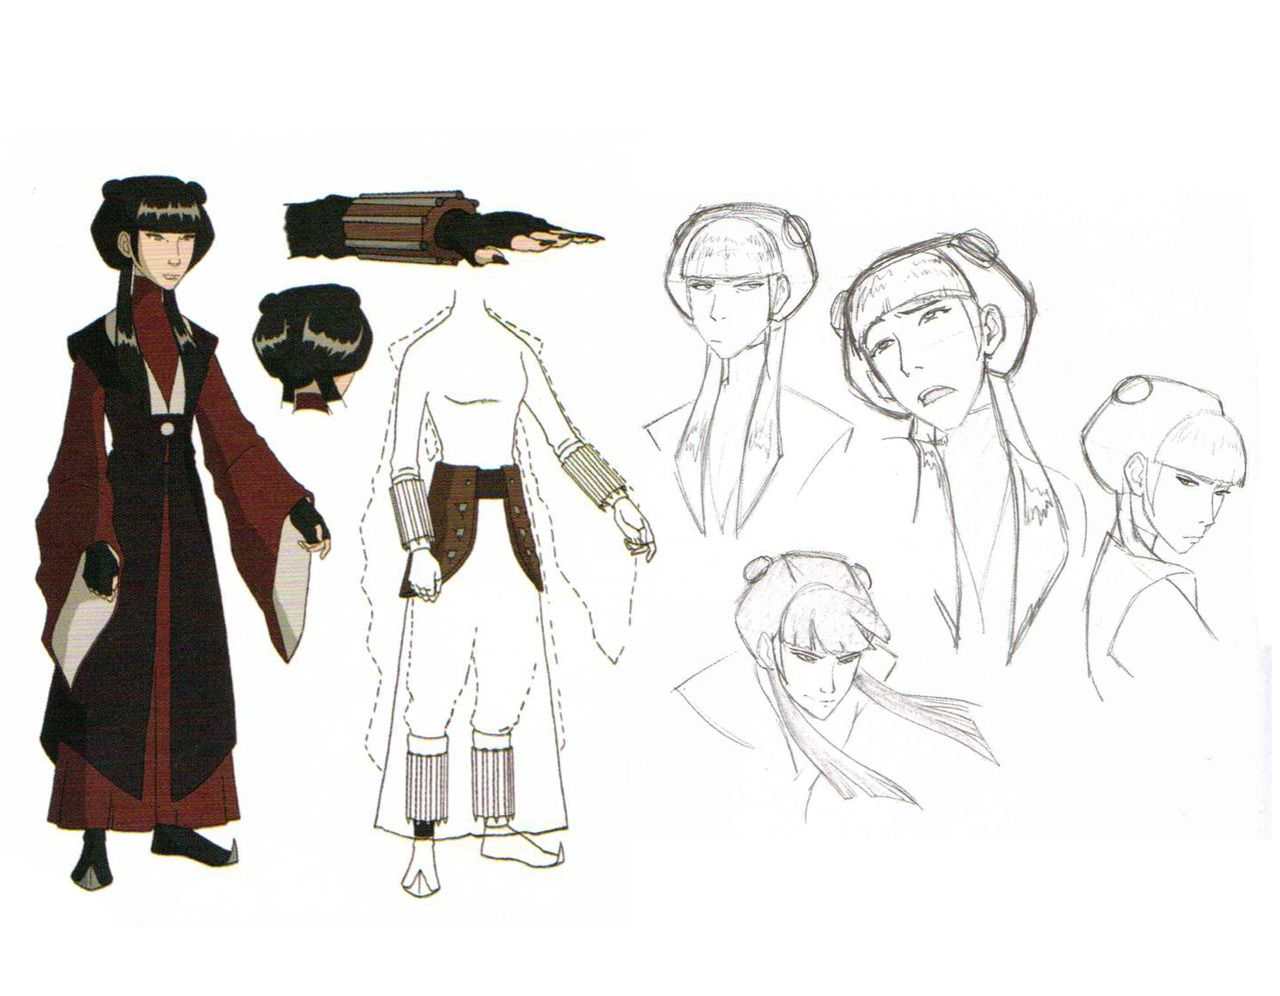 Avatar Last Airbender Character Design : Mai costume and character design i did not know that she